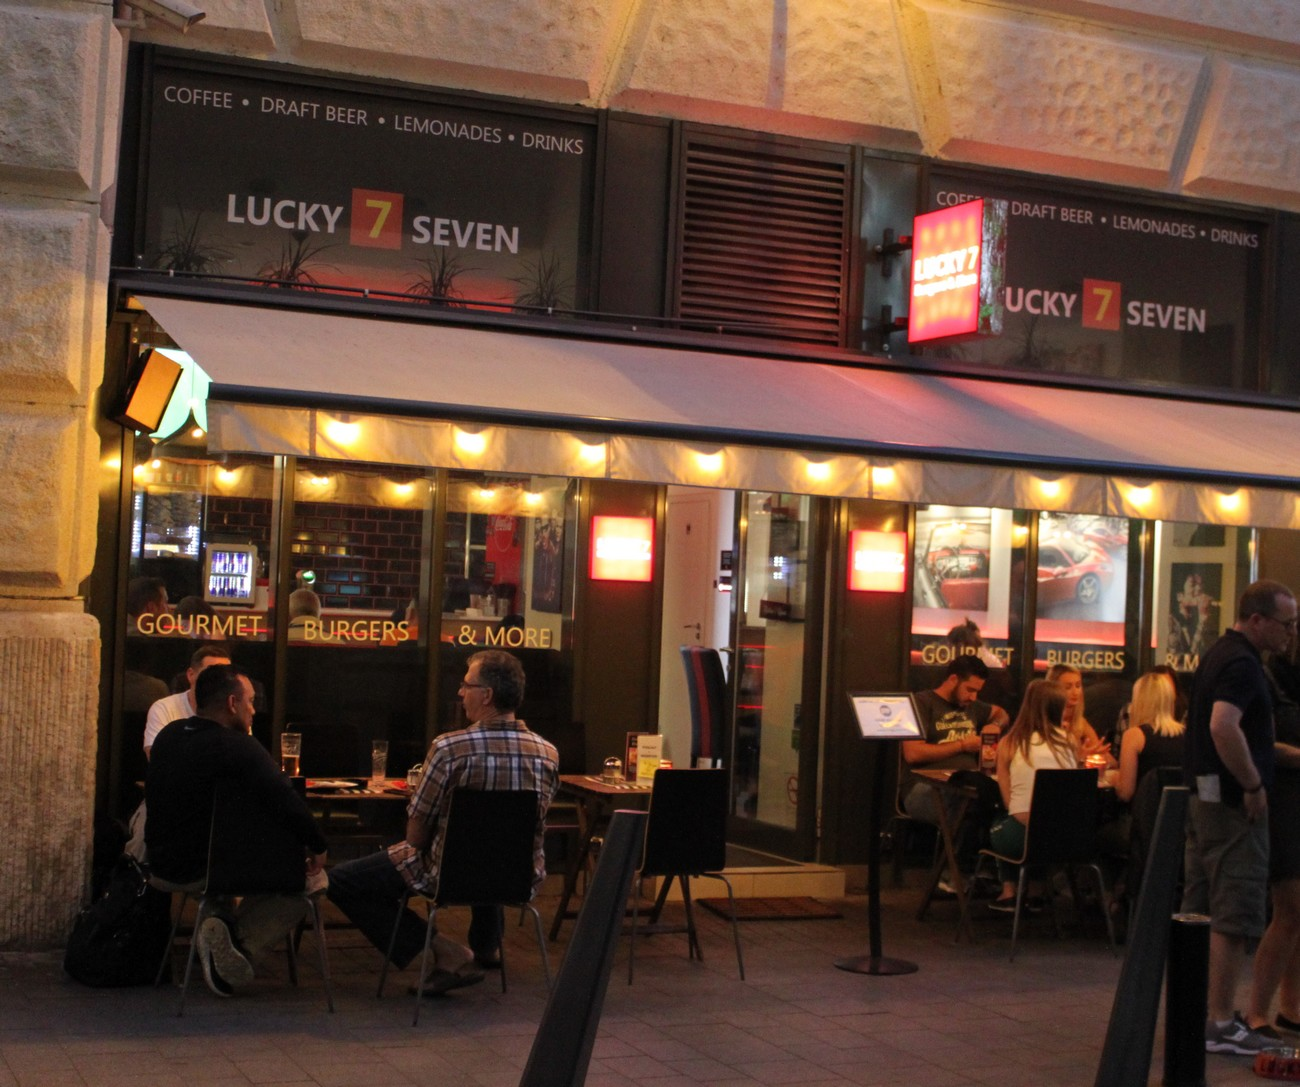 Lucky 7 Burgers in Budapest from the outside